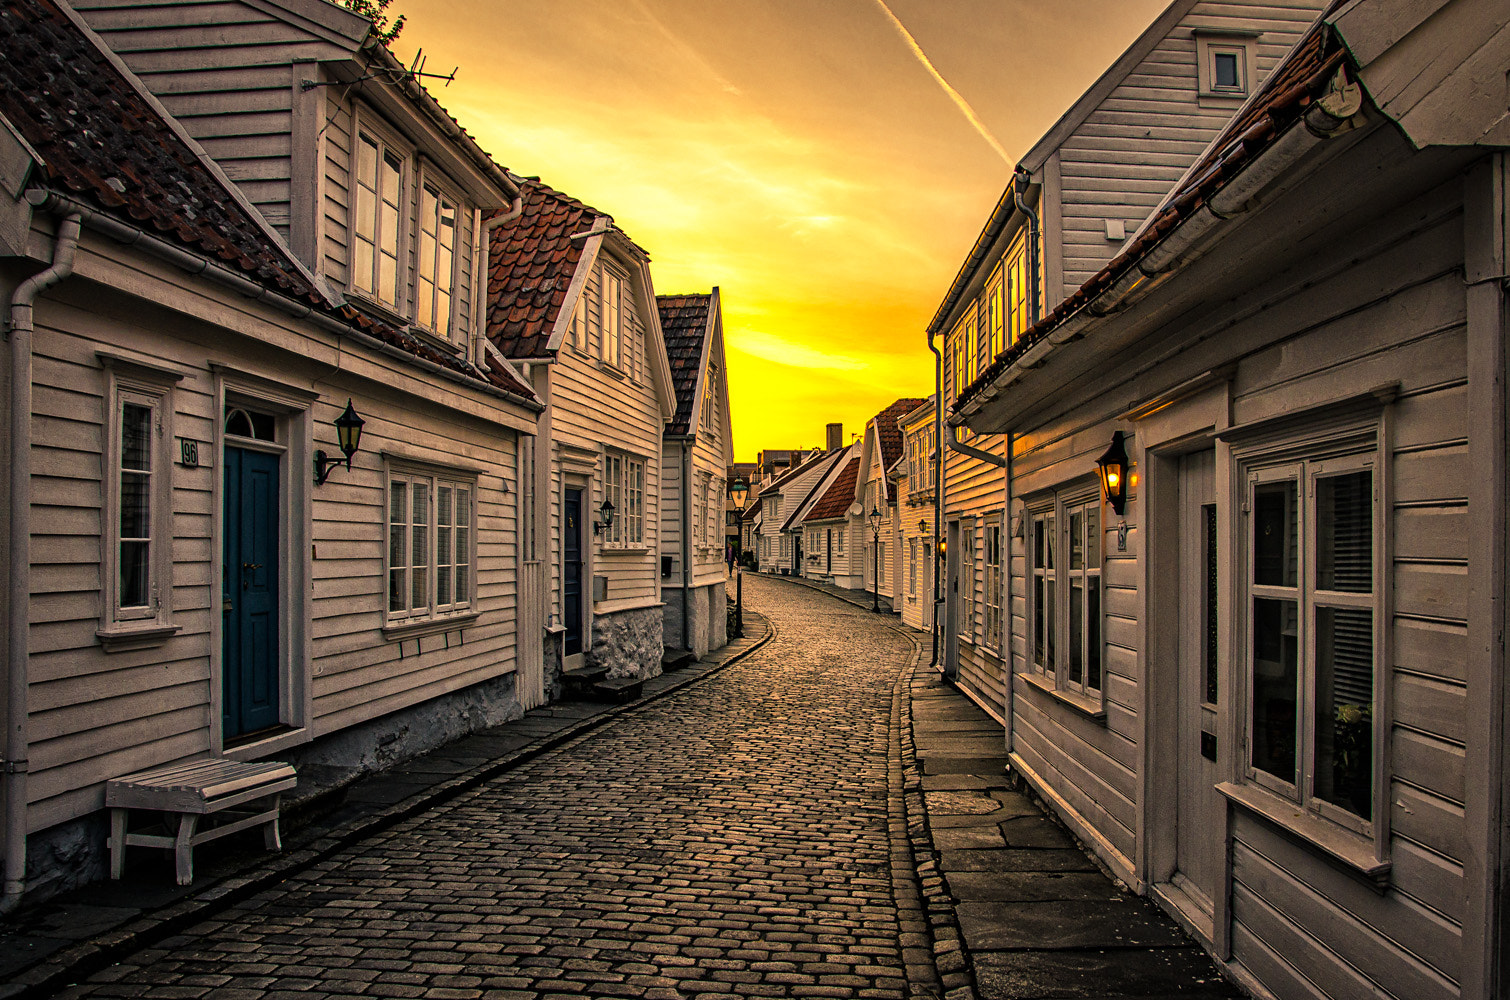 Photograph Sunset in Stavanger by Jing-Ren Zhou on 500px